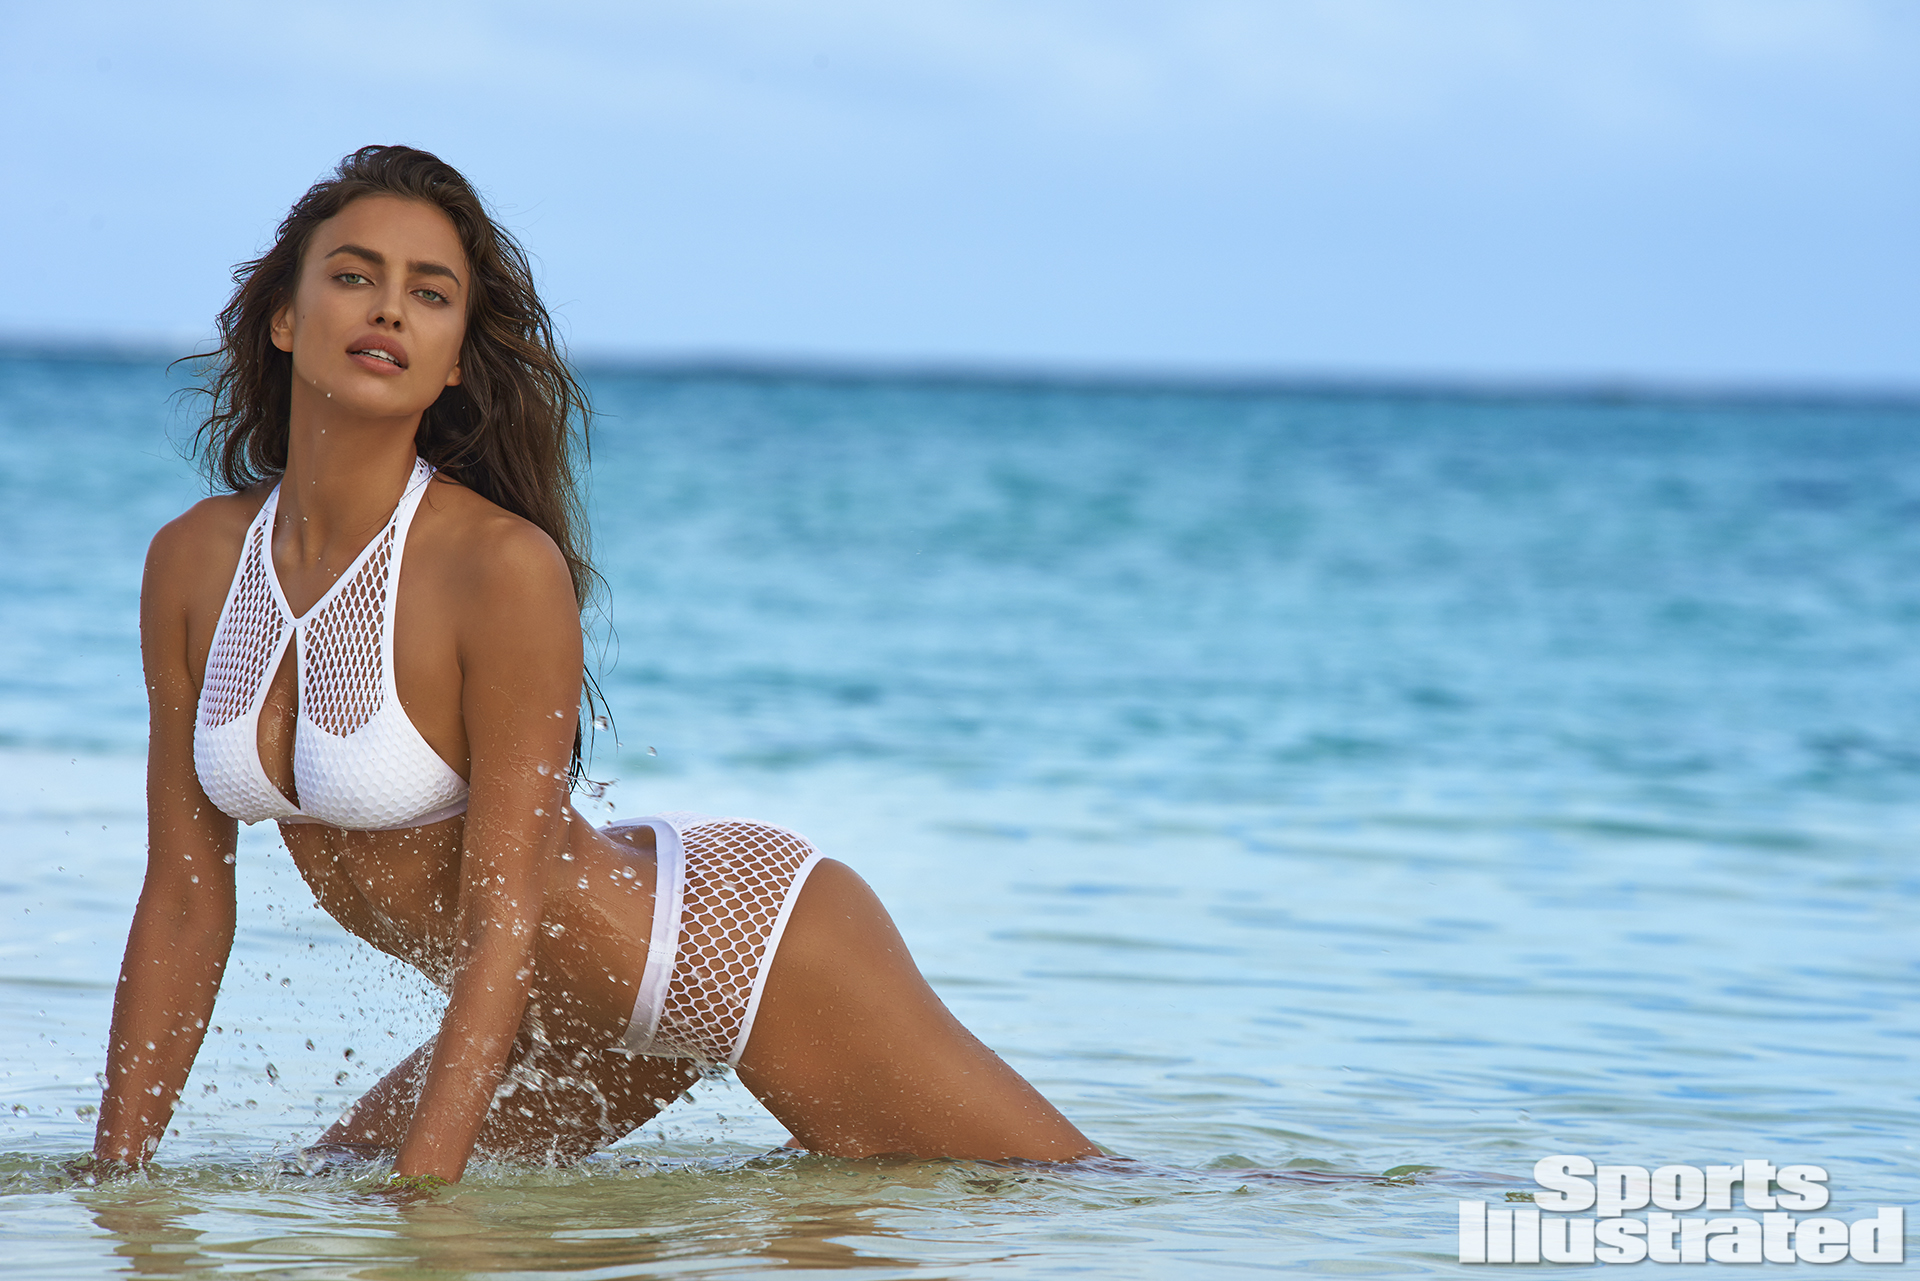 Irina Shayk was photographed by Yu Tsai in The Islands Of Tahiti. Swimsuit by Blue Life Swim.